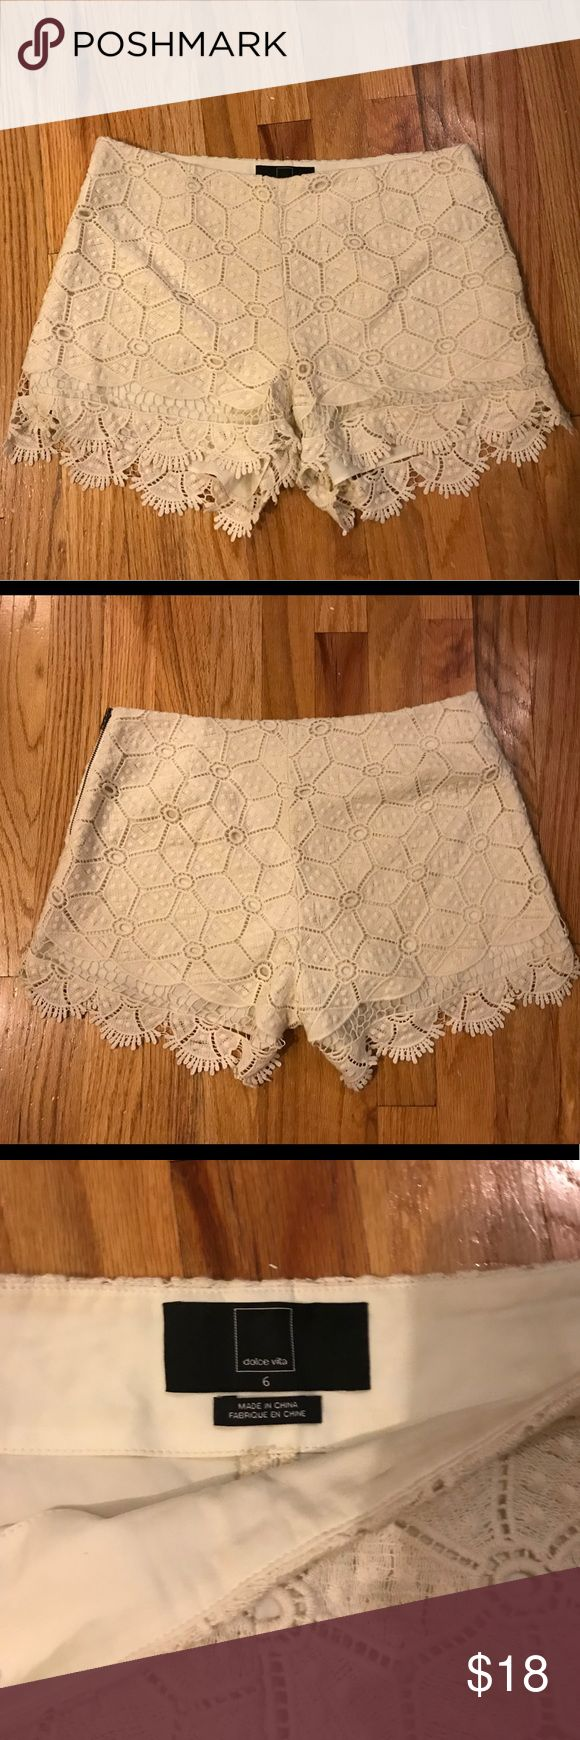 Dolce Vita Cream Lace Shorts Lace shorts in cream by Dolce Vita (Urban Outfitters). Only worn a couple of times - in great condition! Dolce Vita Shorts